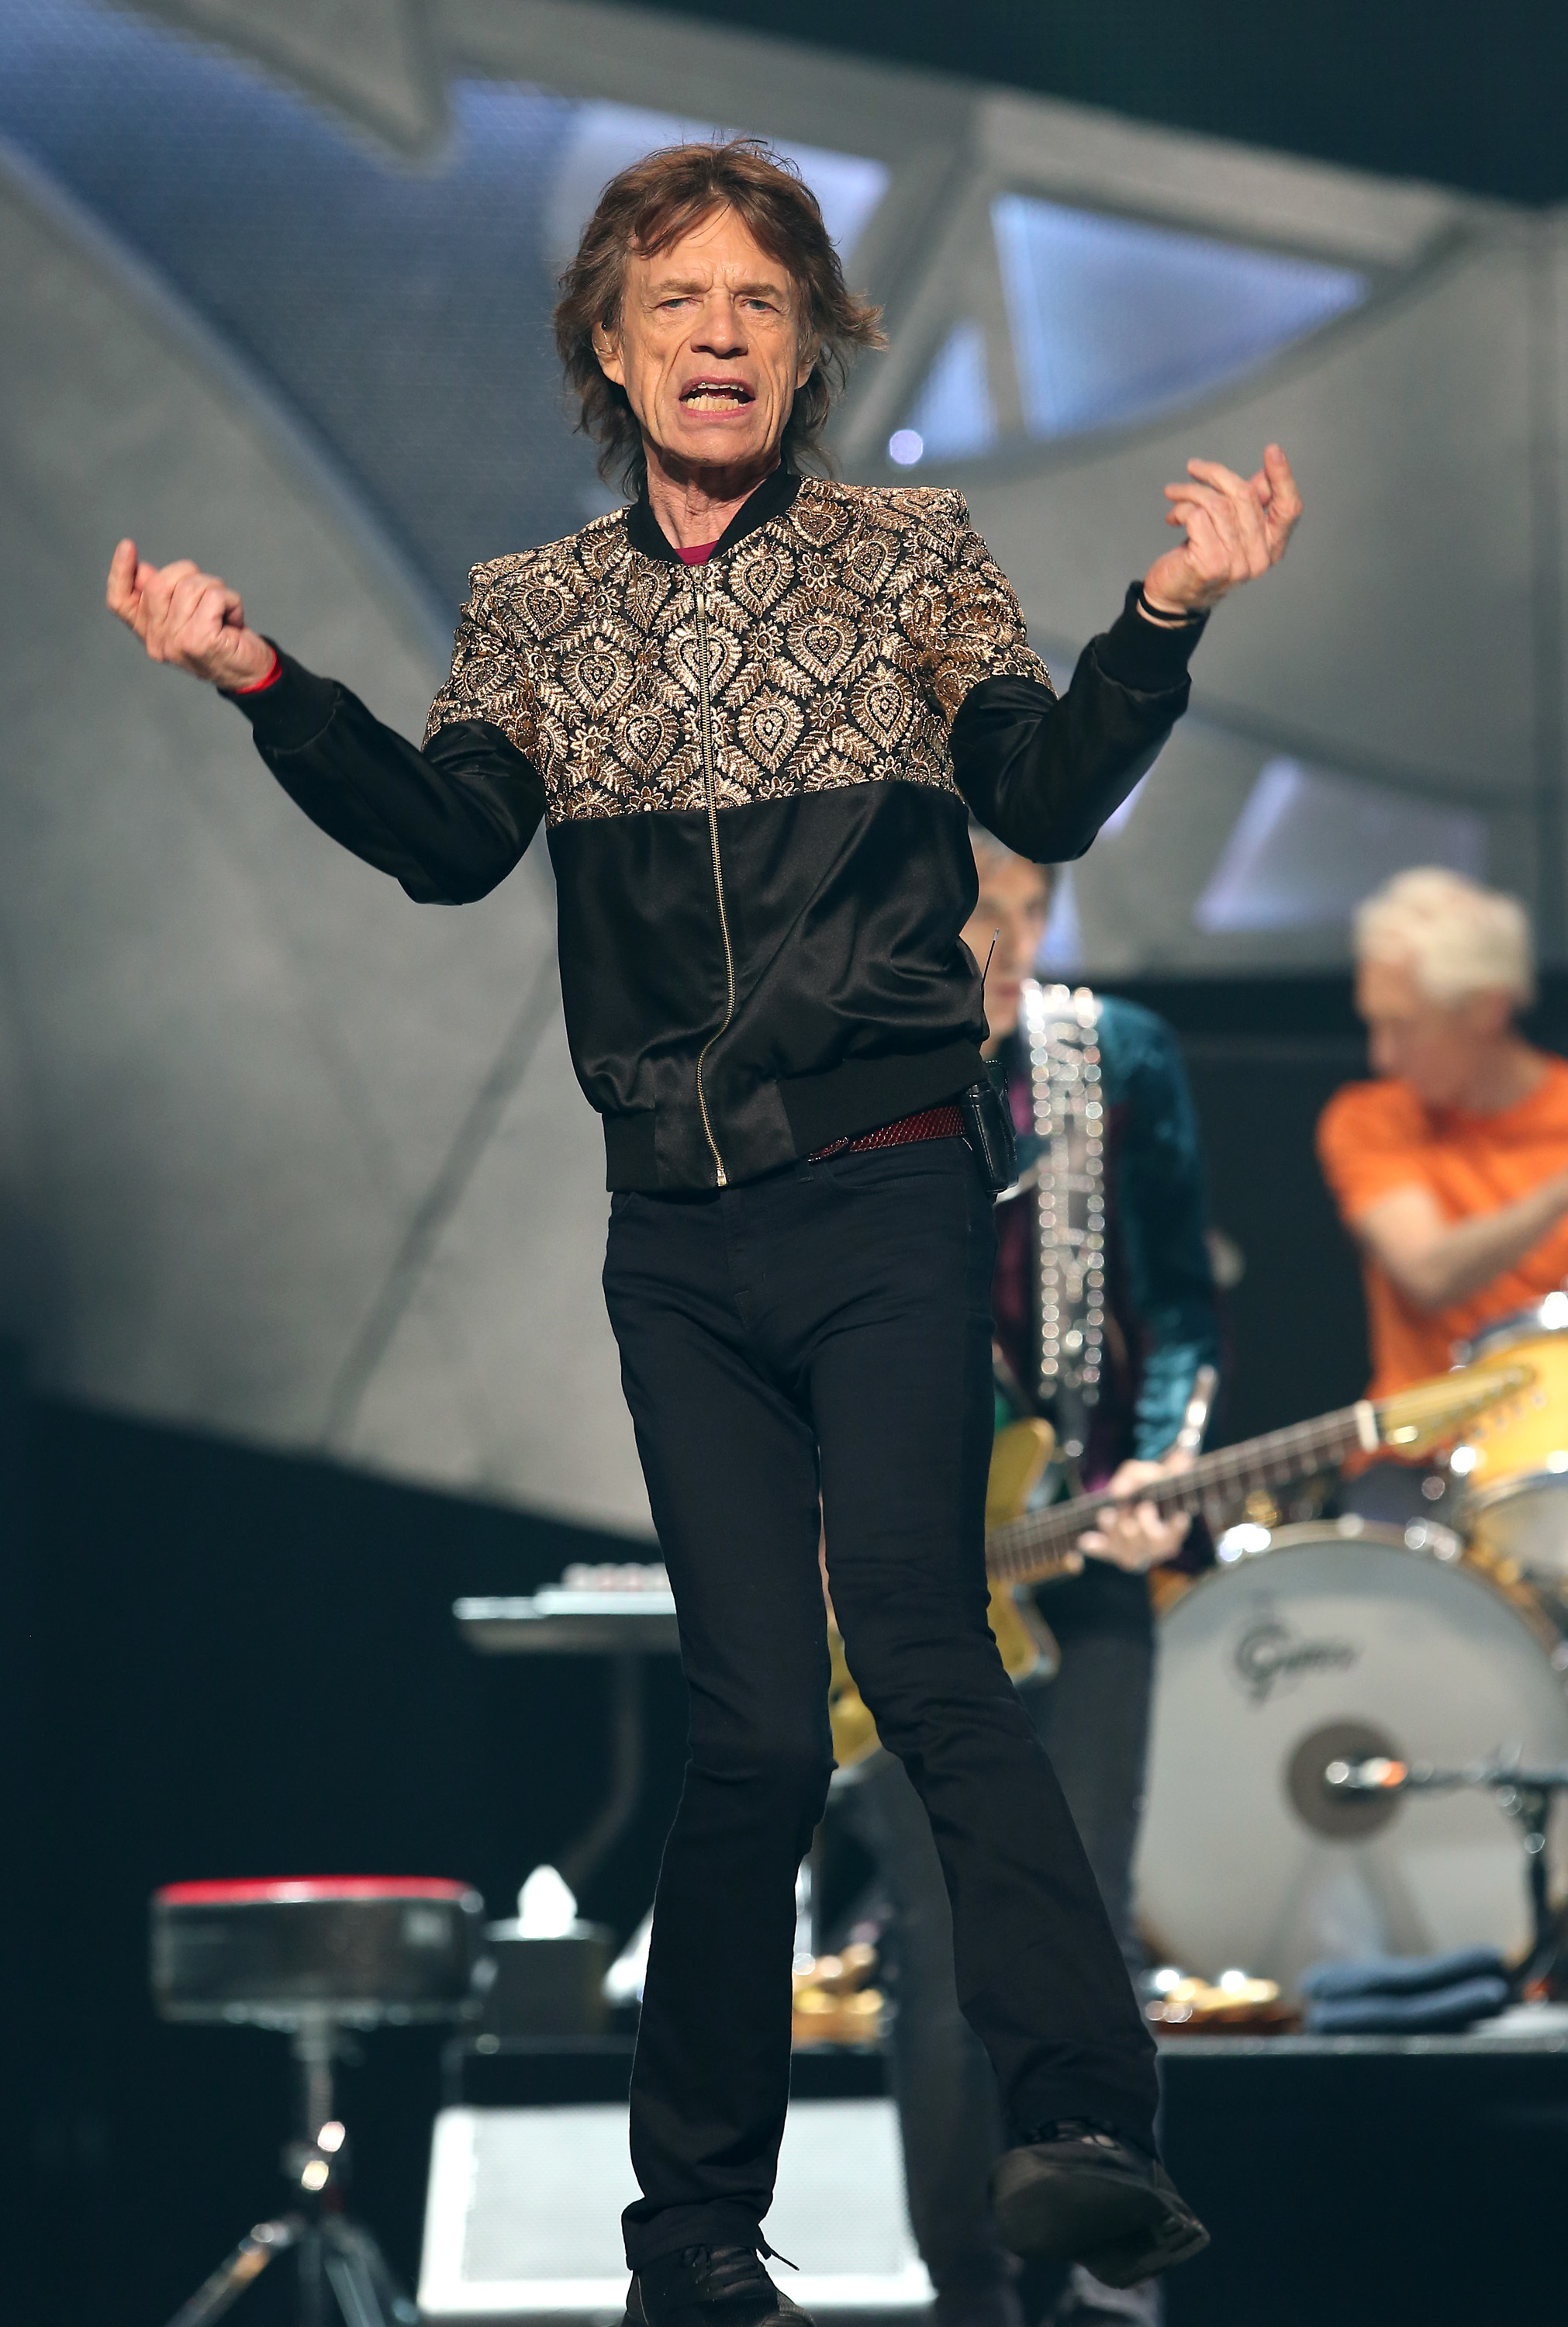 Mick Jagger is an awesome tipper